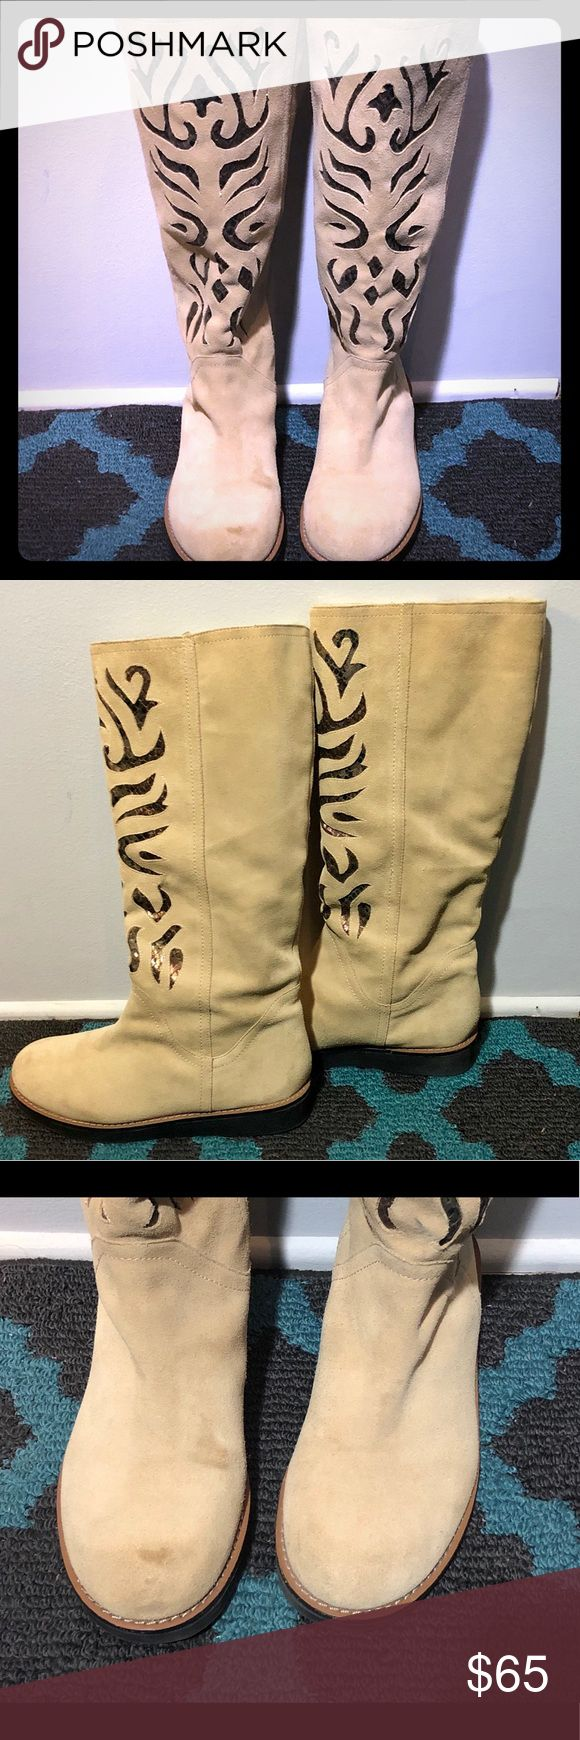 """Carlos Santana boots Suede upper. Faux python inset at laser cut flames. Faux fur lining. Ugg look. Size 7.5. Style: Artista. Low/Flat heel. About 1/2"""" at toe, just over 1"""" at heel. Round toe. Colors: warm taupe (tan) python, golden brown. Rise: from top of sole to top of boot, 16"""". This item is used and in very good condition, some scuffs on right shoe as pictured...Soles show almost no wear. Carlos Santana Shoes Winter & Rain Boots"""